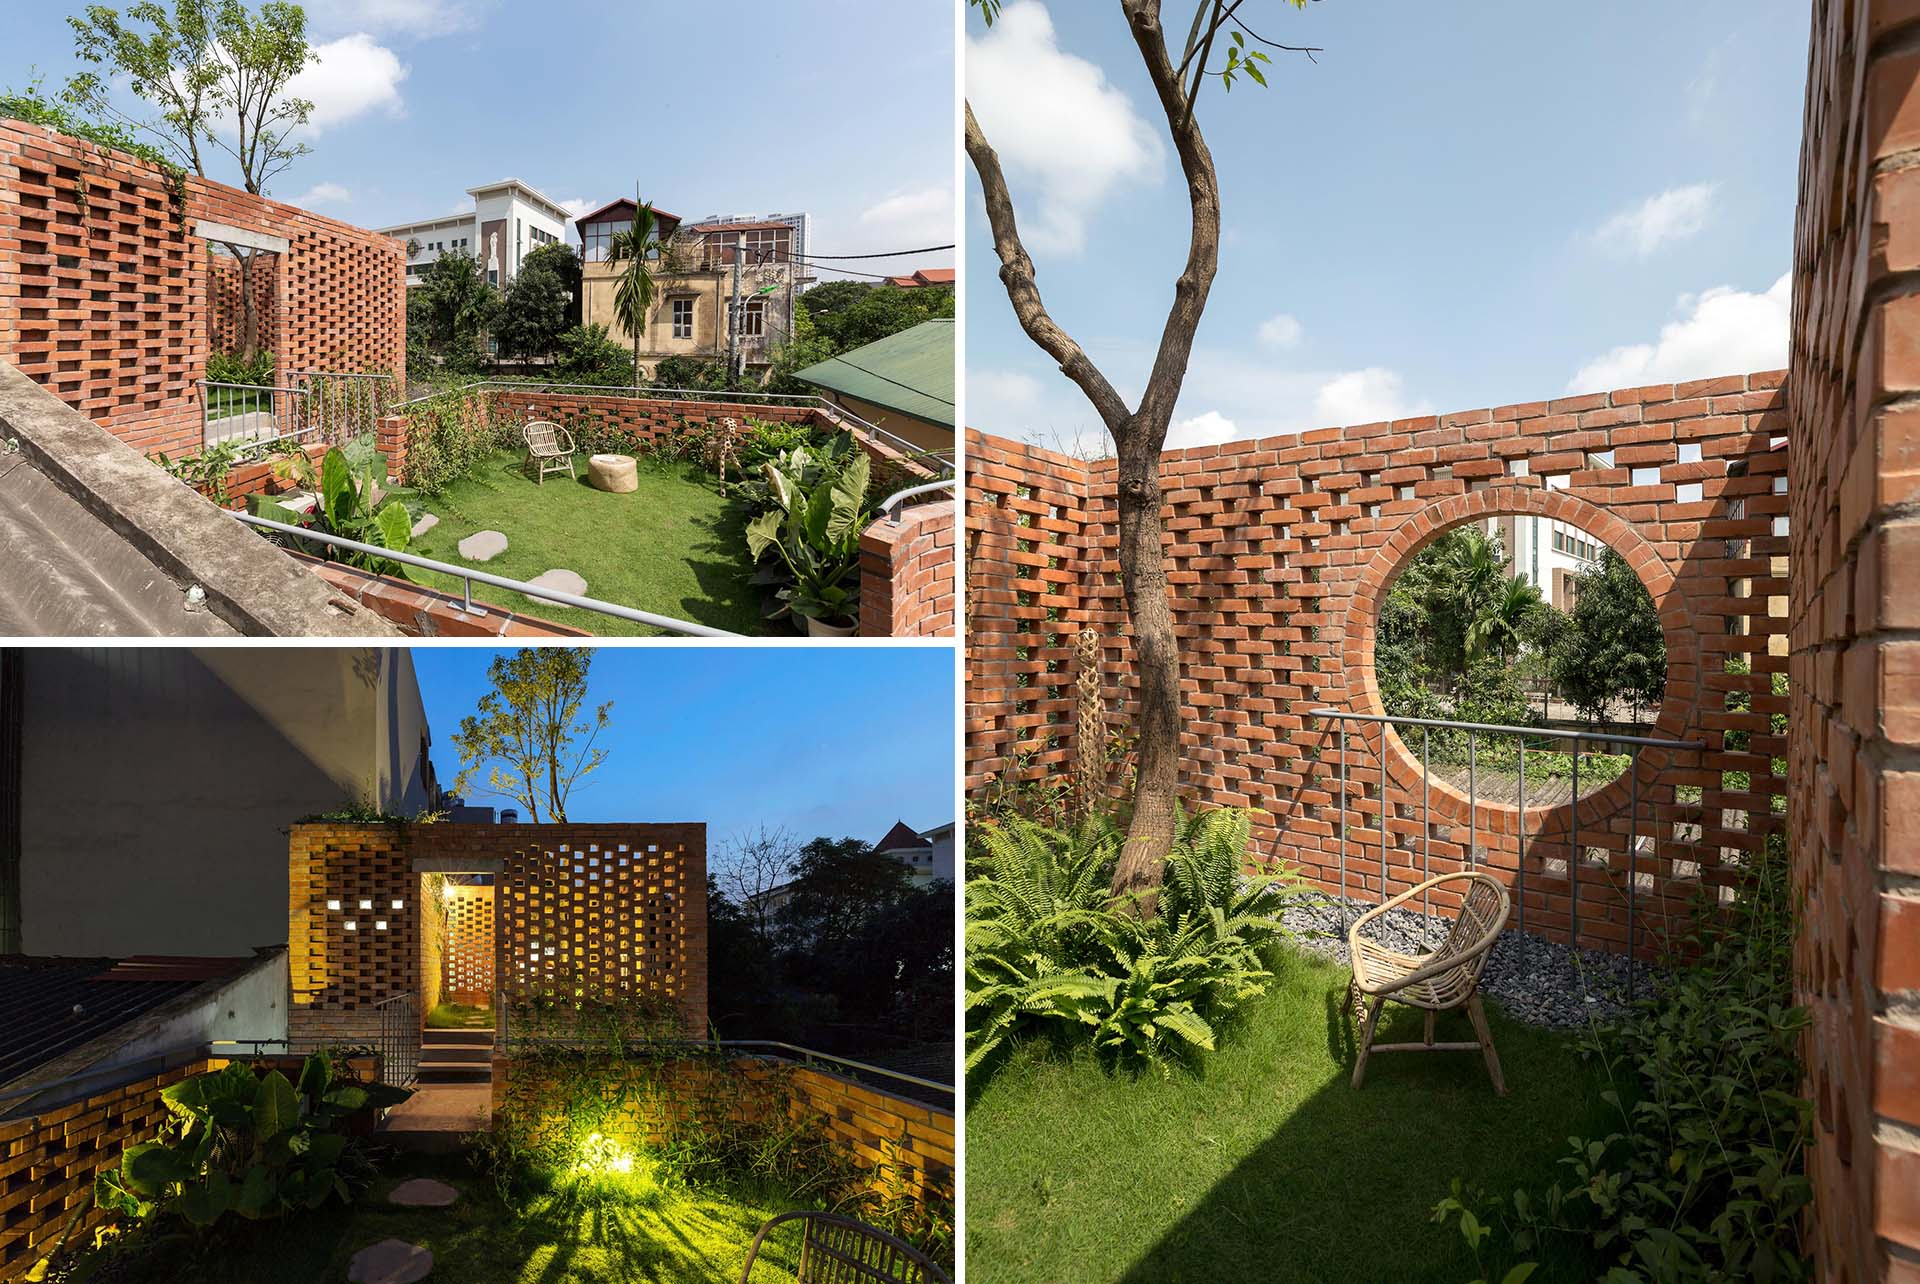 A contemporary home with rooftop courtyards surrounded by brick.